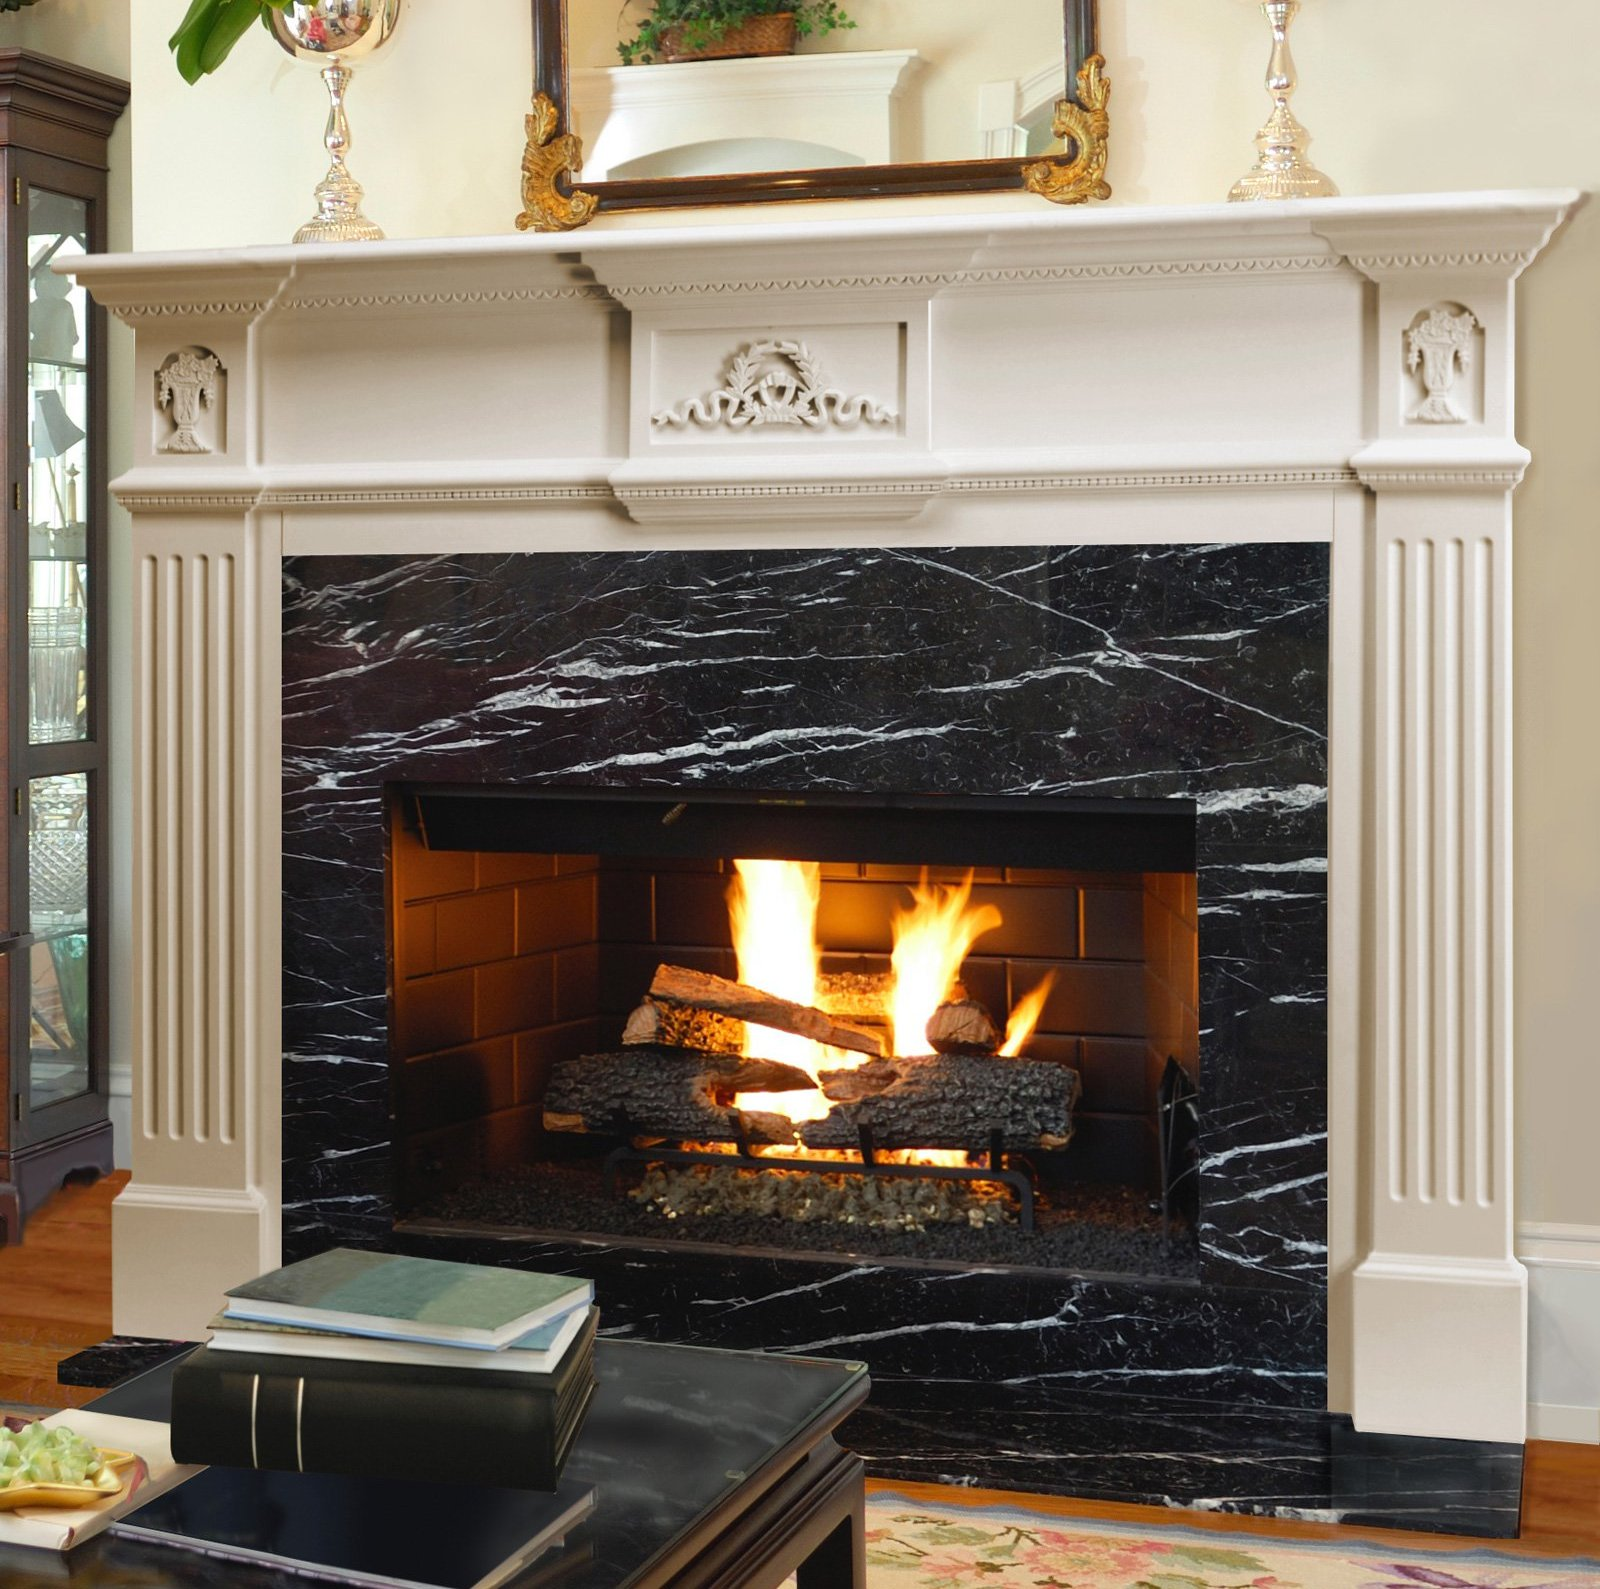 Fireplace Mantels Home Depot | Prefabricated Fireplace Mantels | Lowes Fireplace Mantel